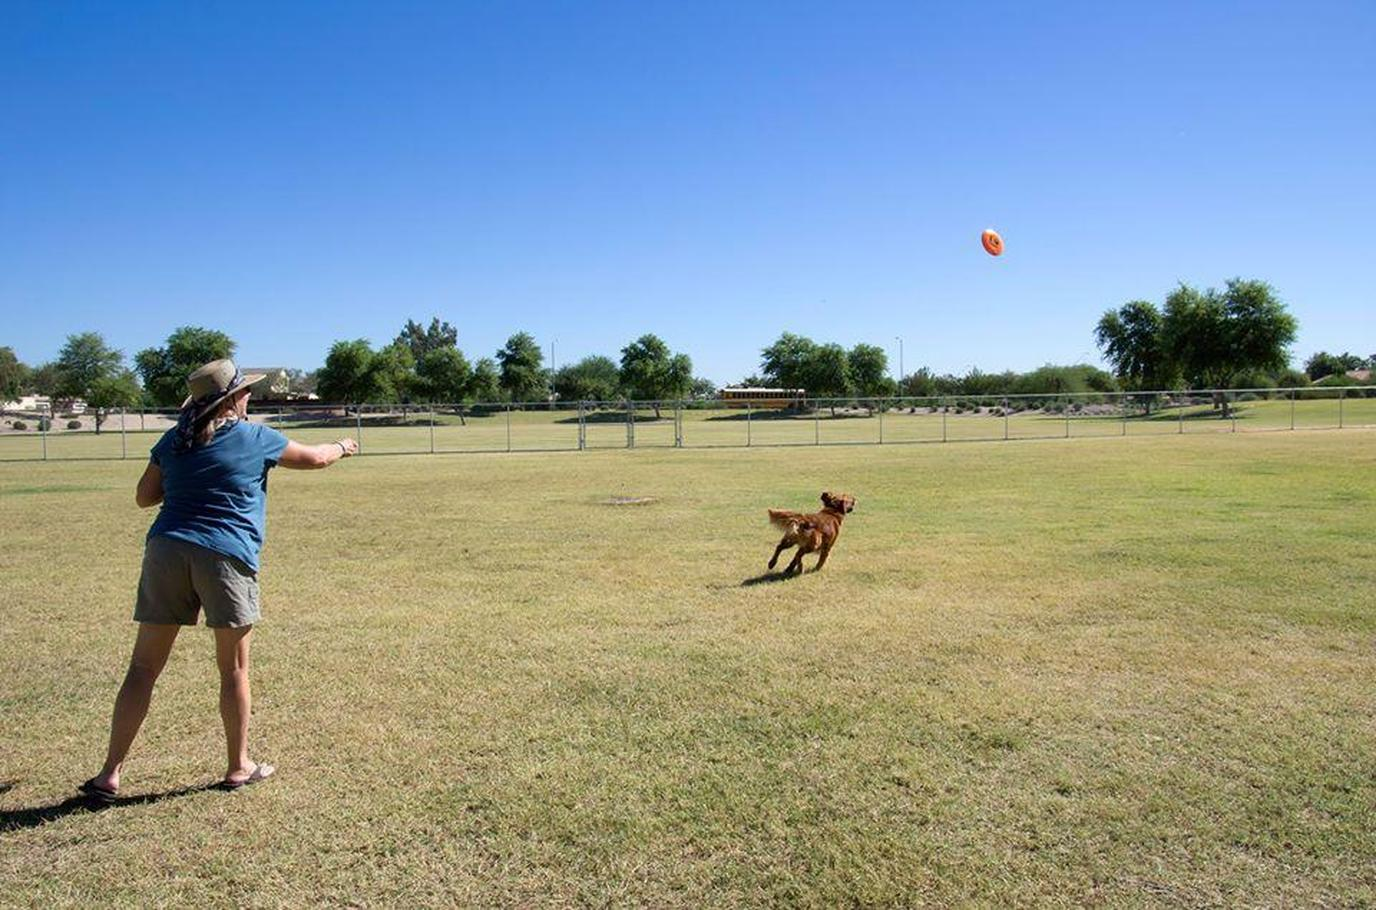 A Woman and Dog Play Frisbee at a Dog Park in Pet-Friendly Peoria.